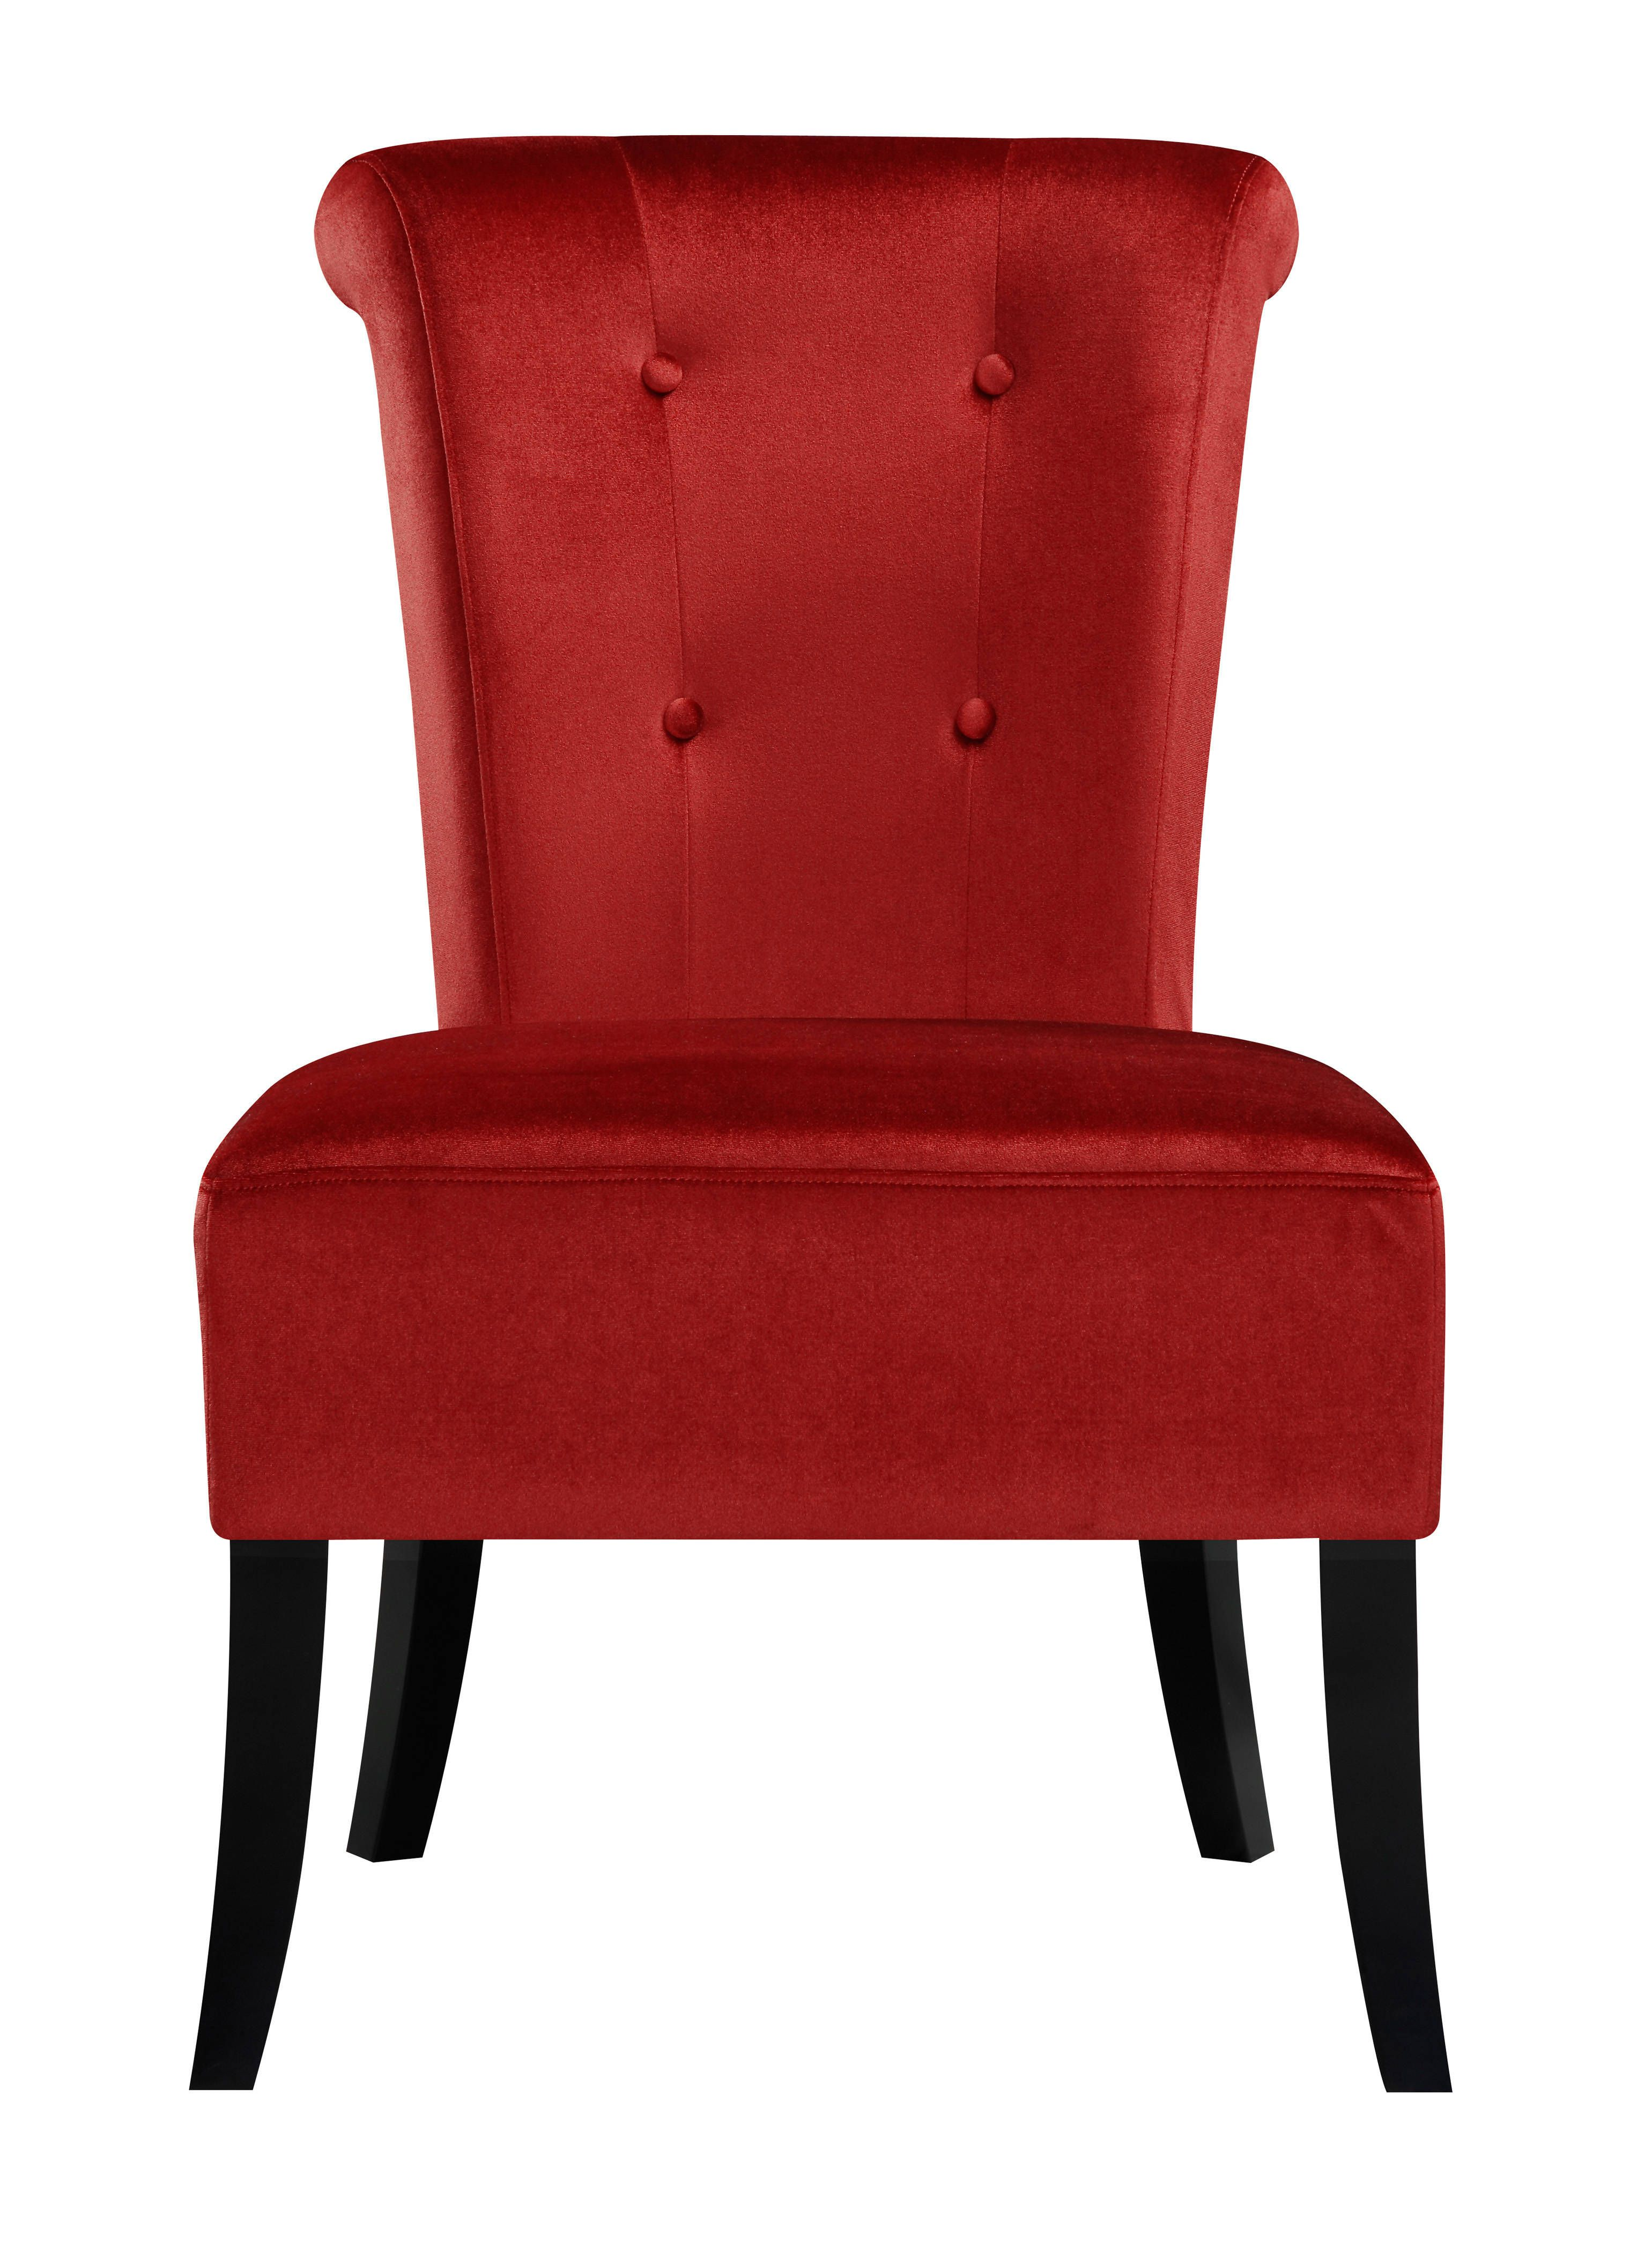 Red Upholstered Dining Chairs Contemporary Red Hardwood Fabric Carolina Crimson Dining Chair